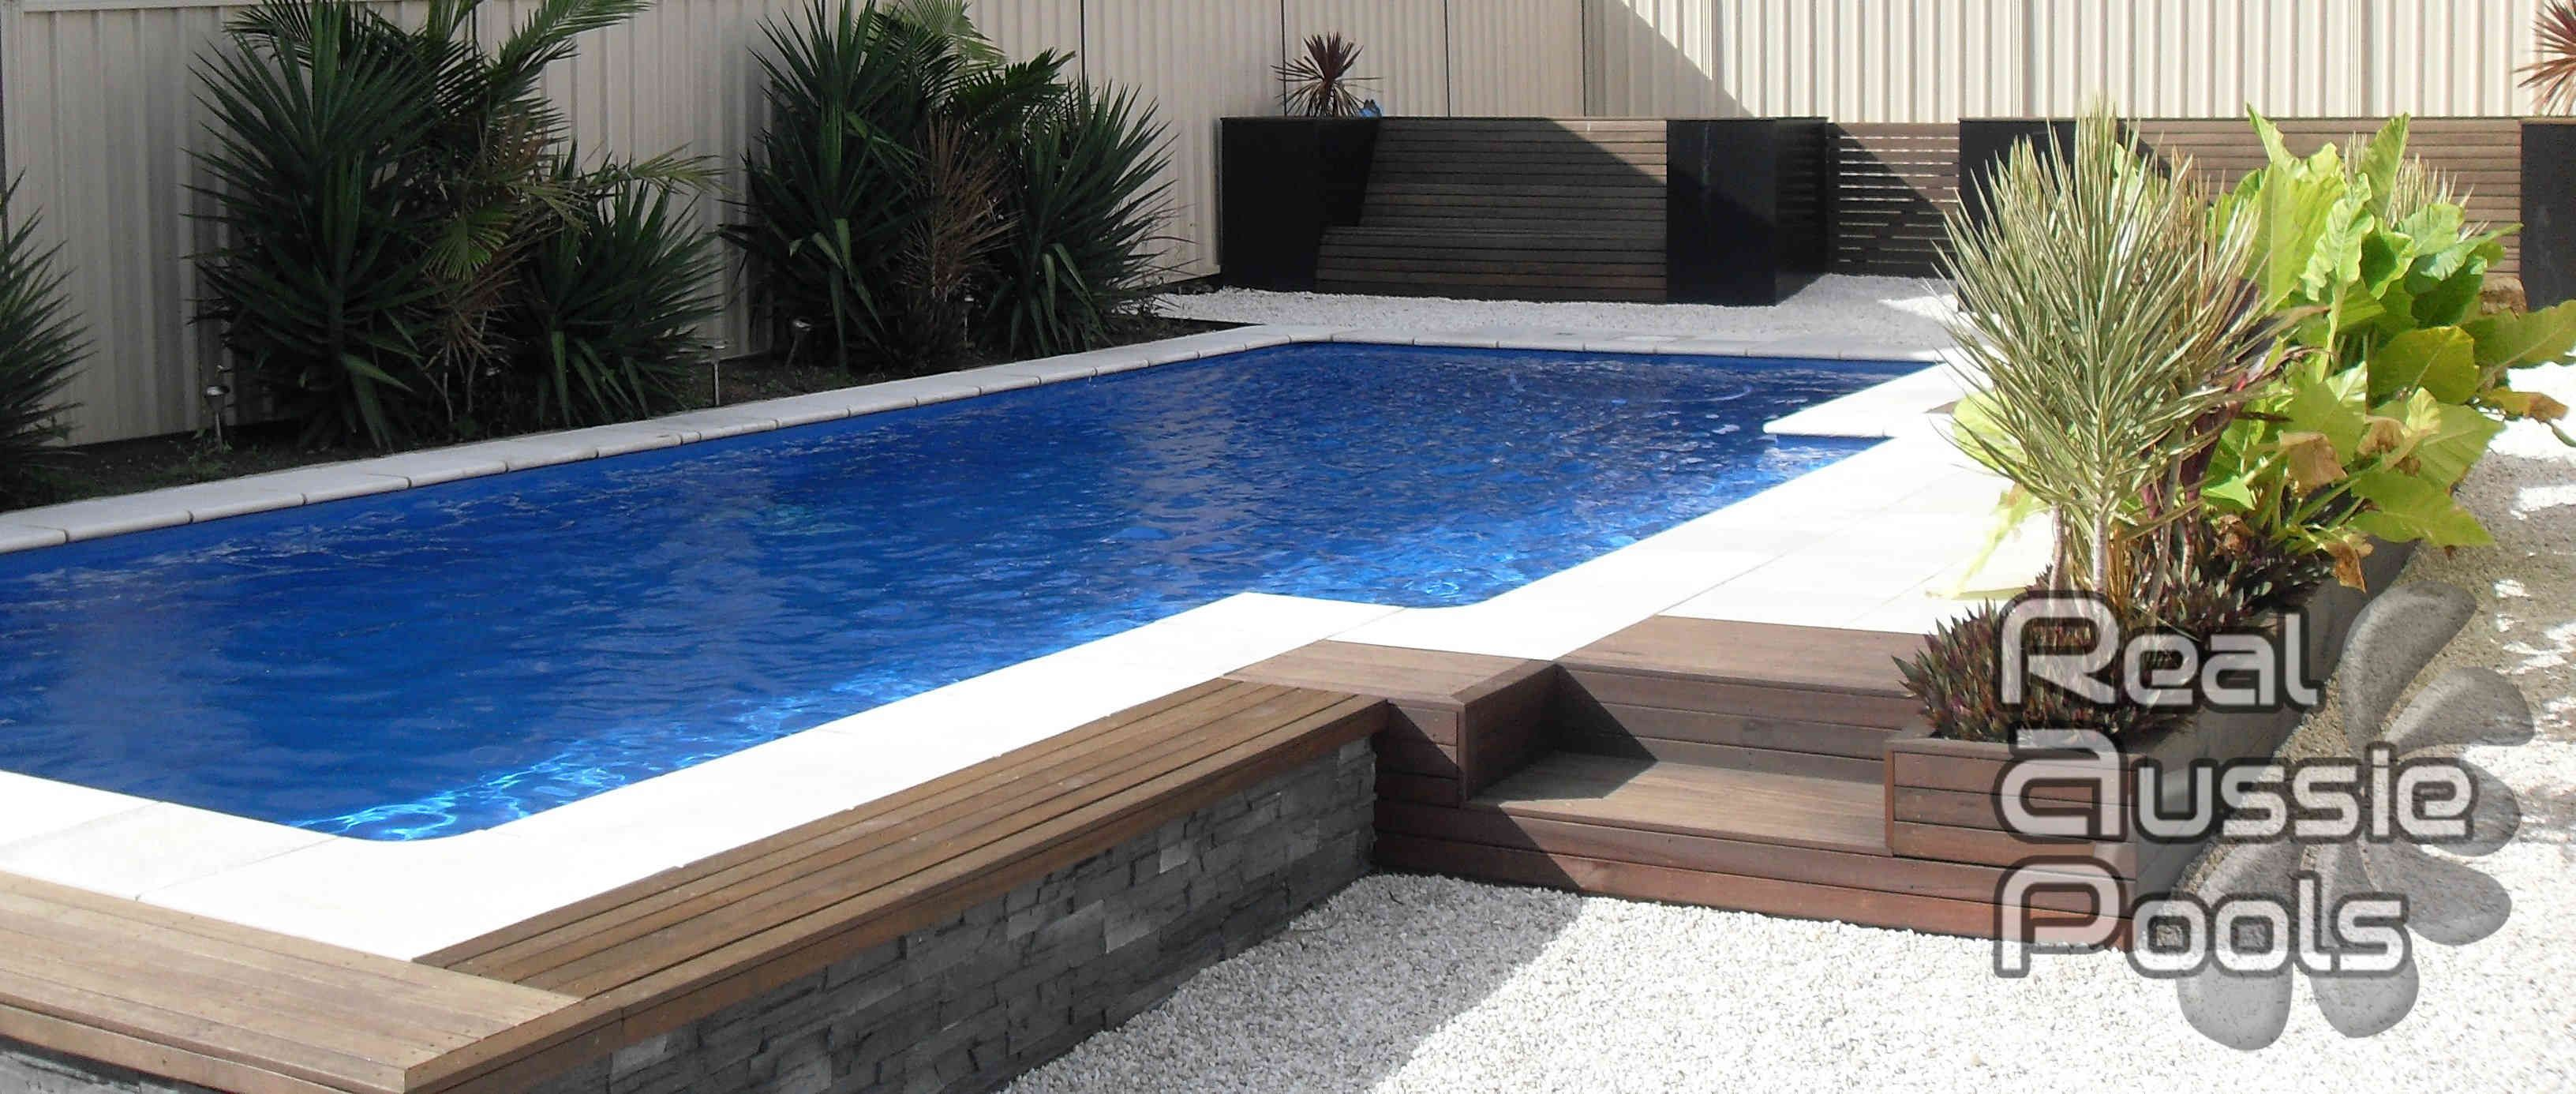 fibreglass permanent pool with stone materials pool frame and fresh plant decorating also minimalist wooden pool in ground poolsabove